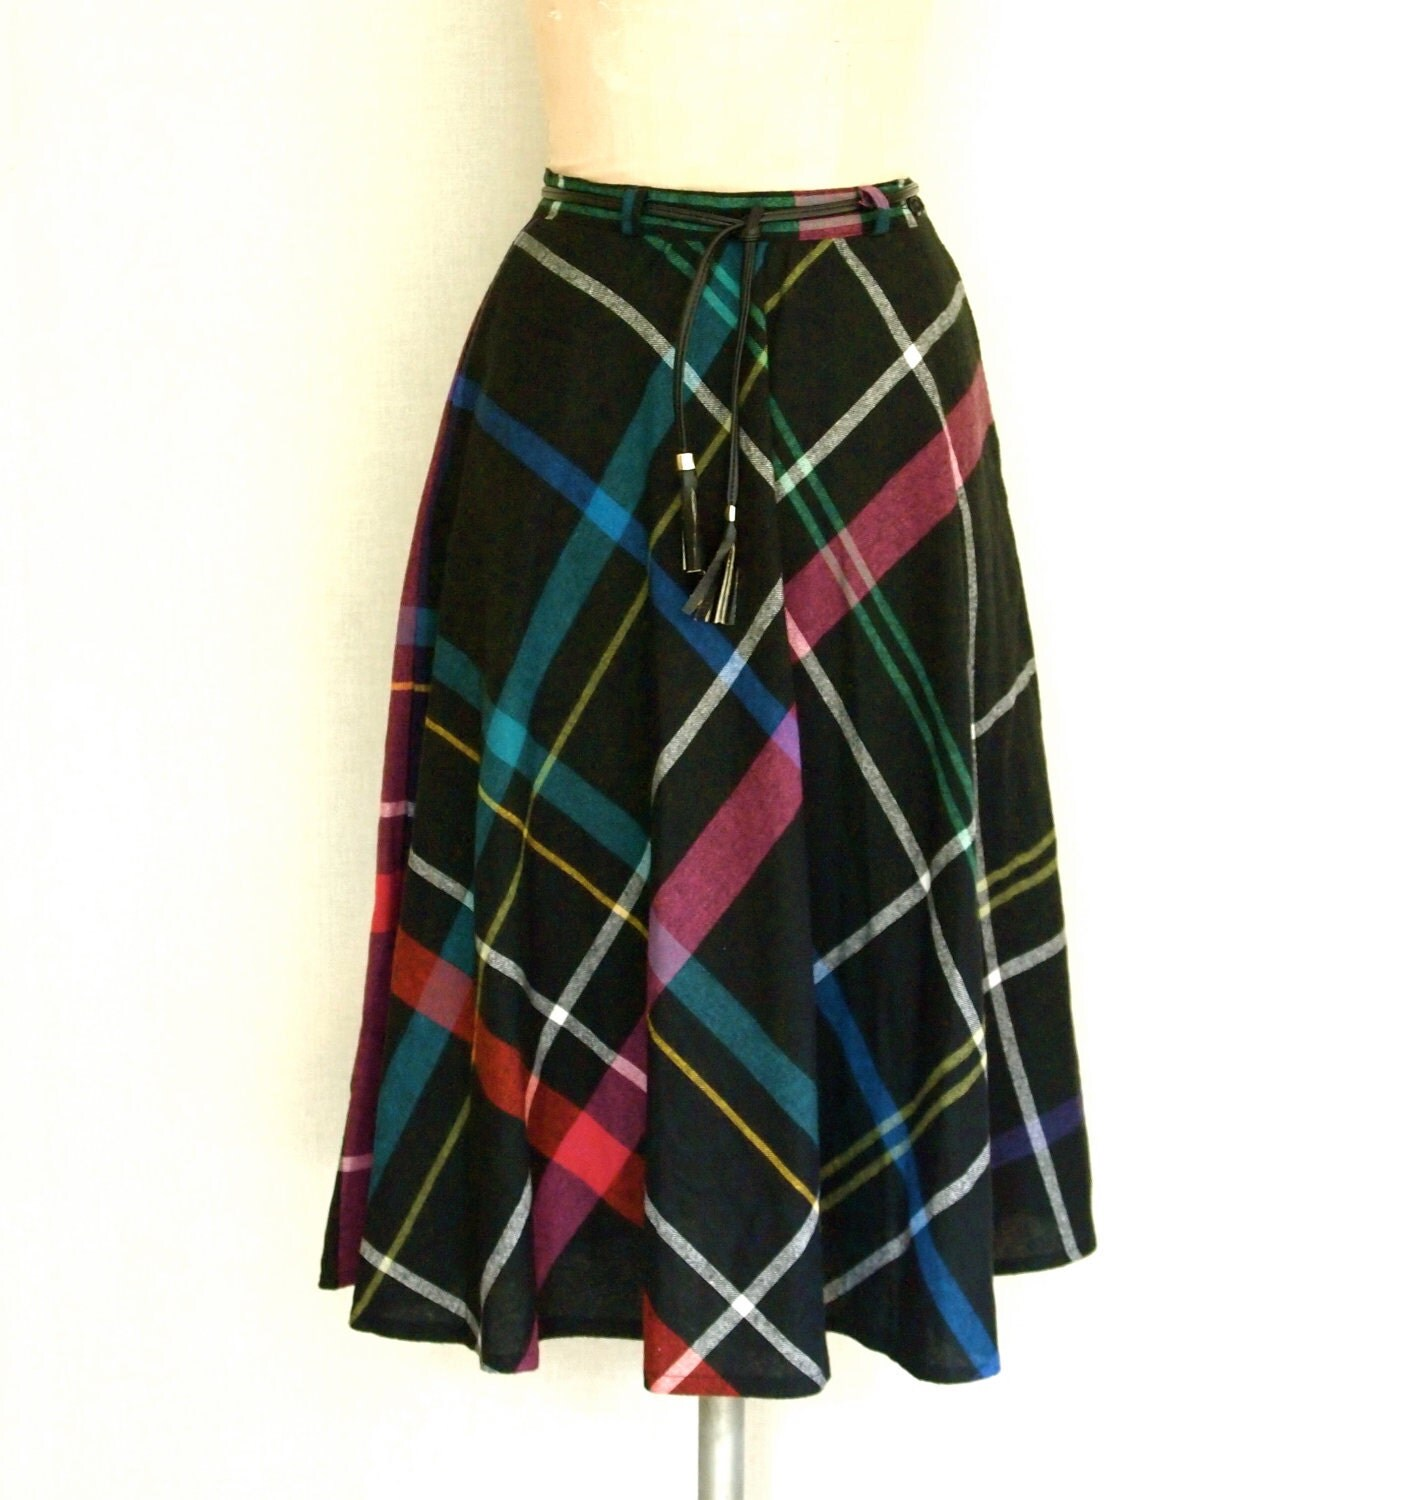 Vintage 1970s Plaid Tartan skirt // 70s high waist pocket skirt